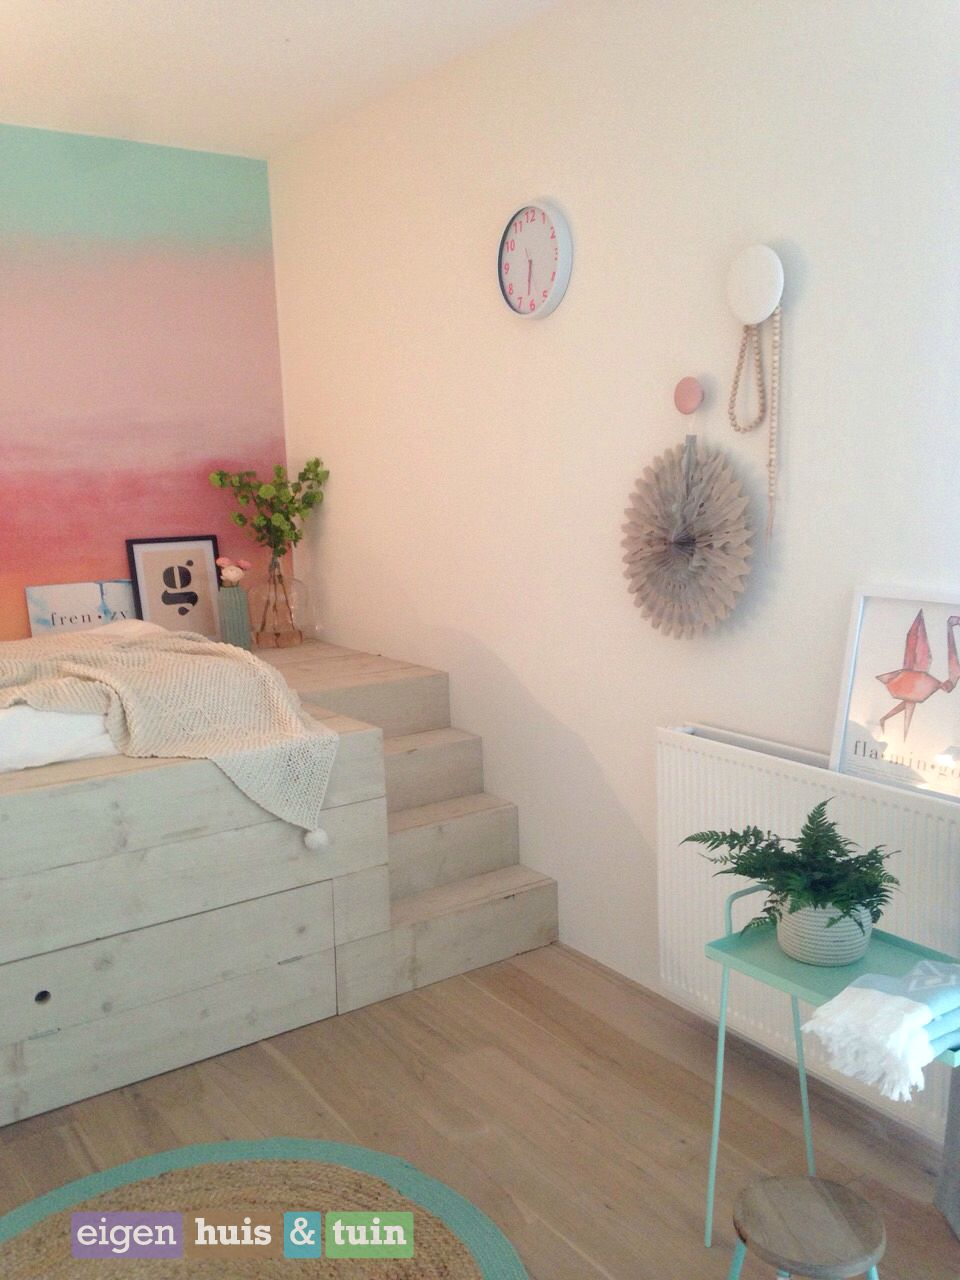 1000 images about kinderbedden on pinterest - Ideeen deco tienerkamer ...